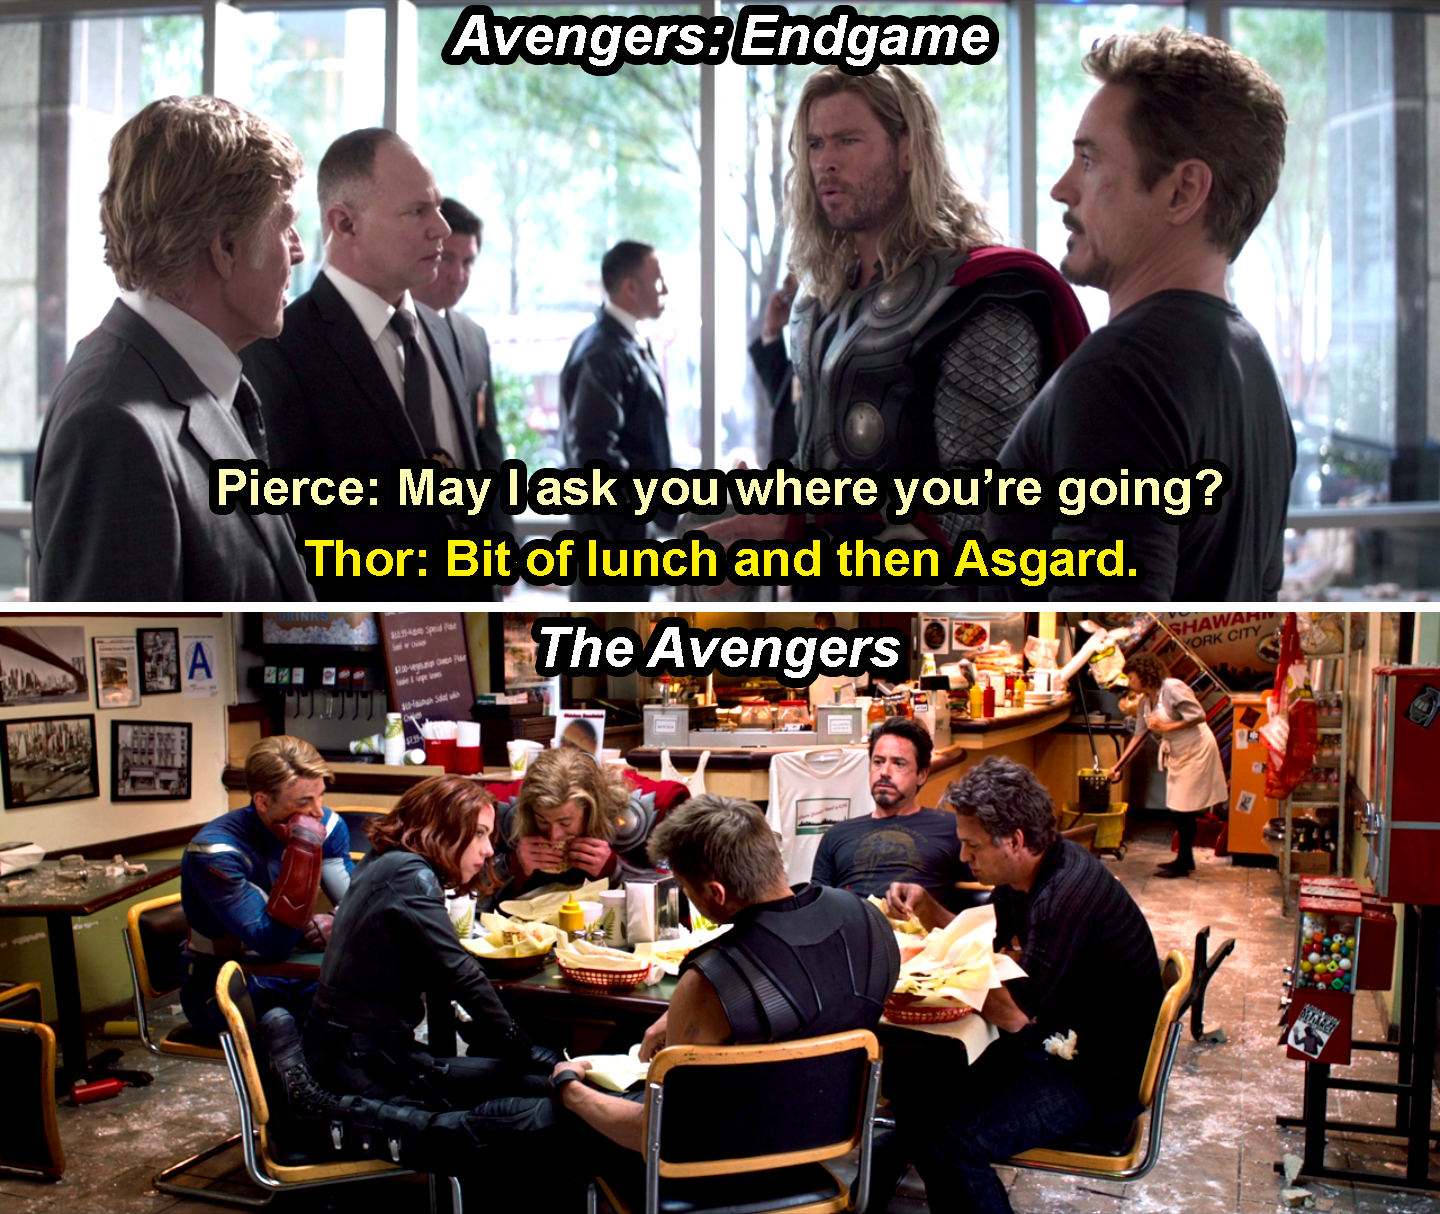 Past Thor saying he and Tony are going for a bit of lunch before he goes to Asgard in Endgame, and the Avengers eating shawarma in The Avengers